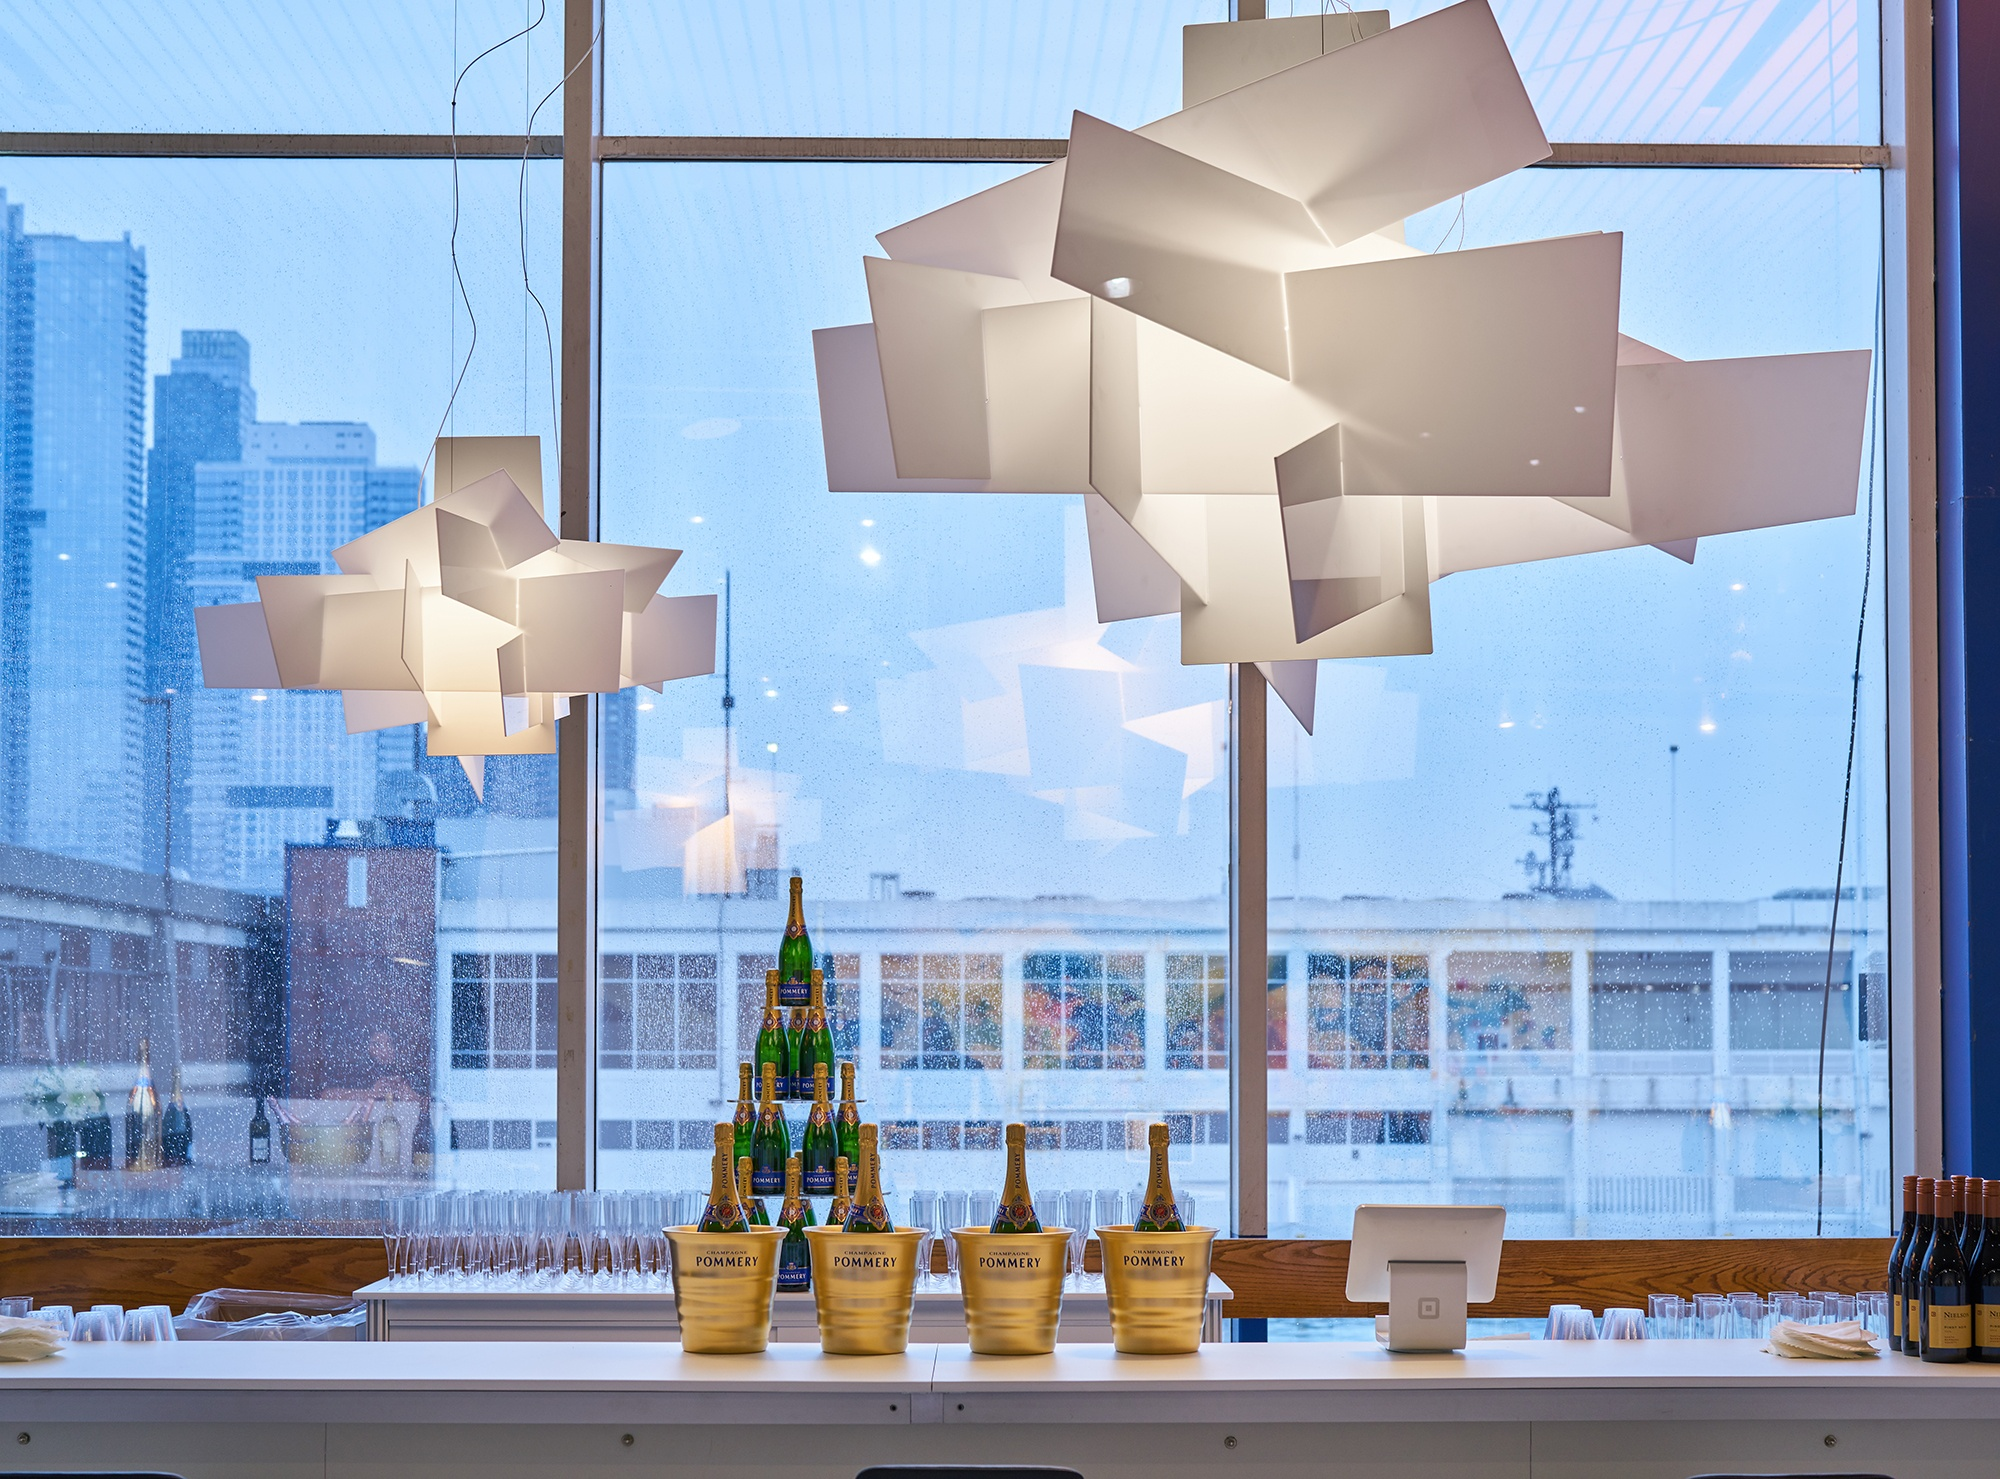 https://d4qwptktddc5f.cloudfront.net/foscarini-big-bang-armory-show.jpg